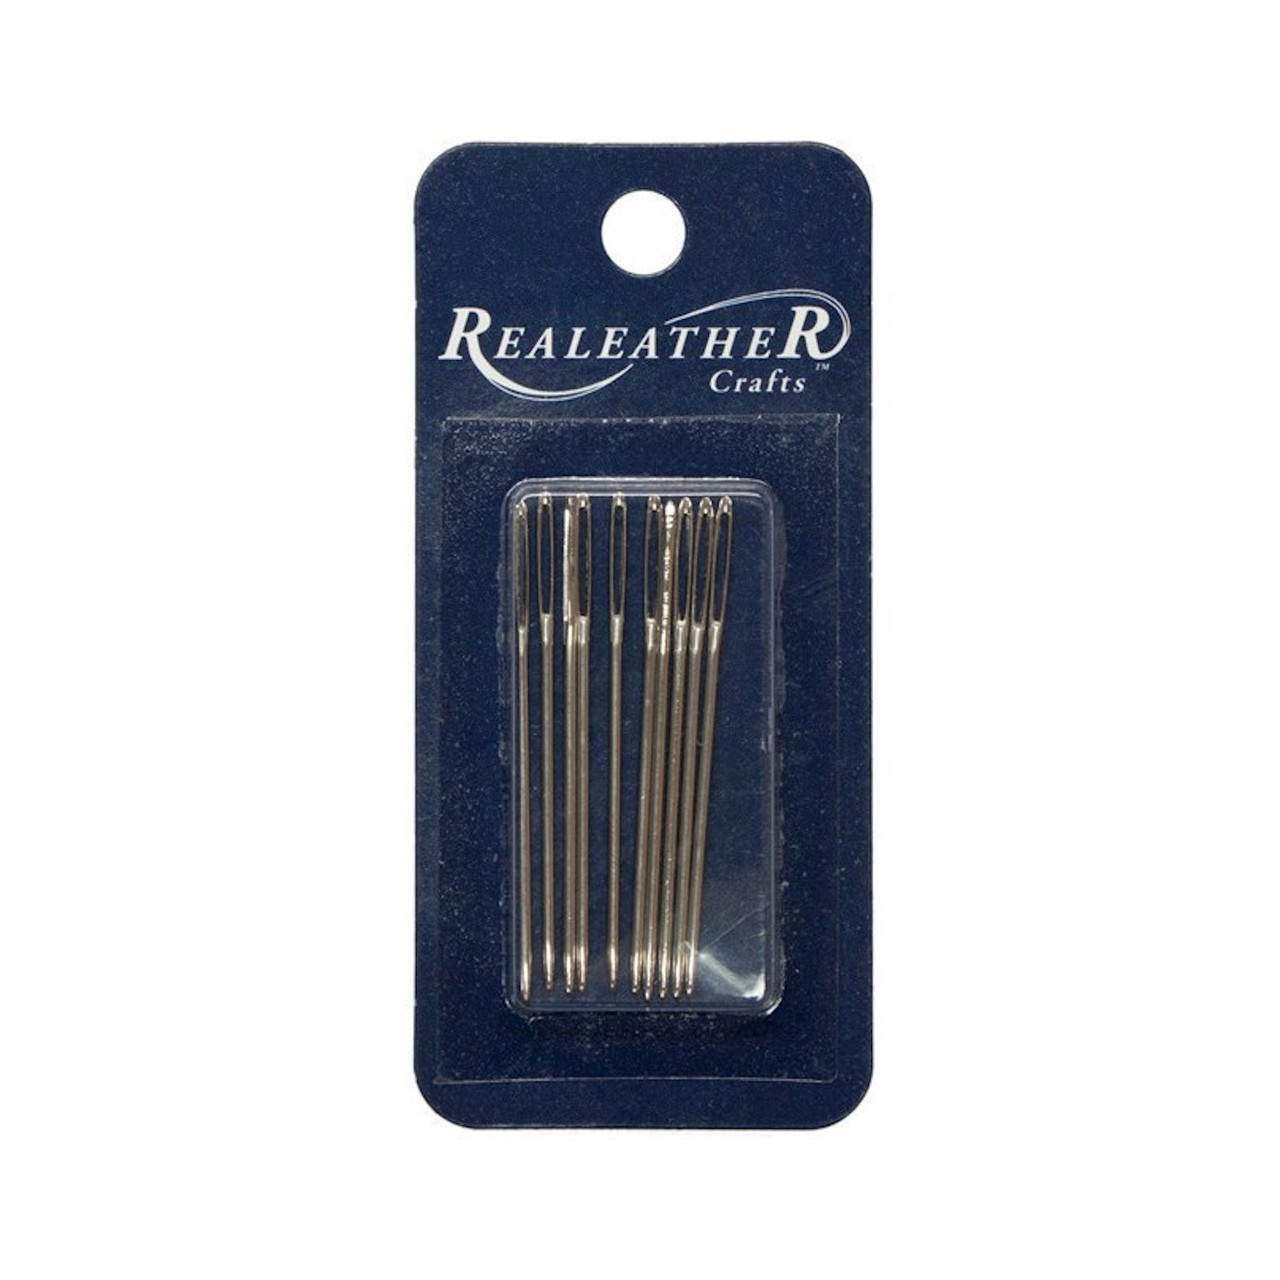 Large Eye Stitching Needles 10 Pack Package